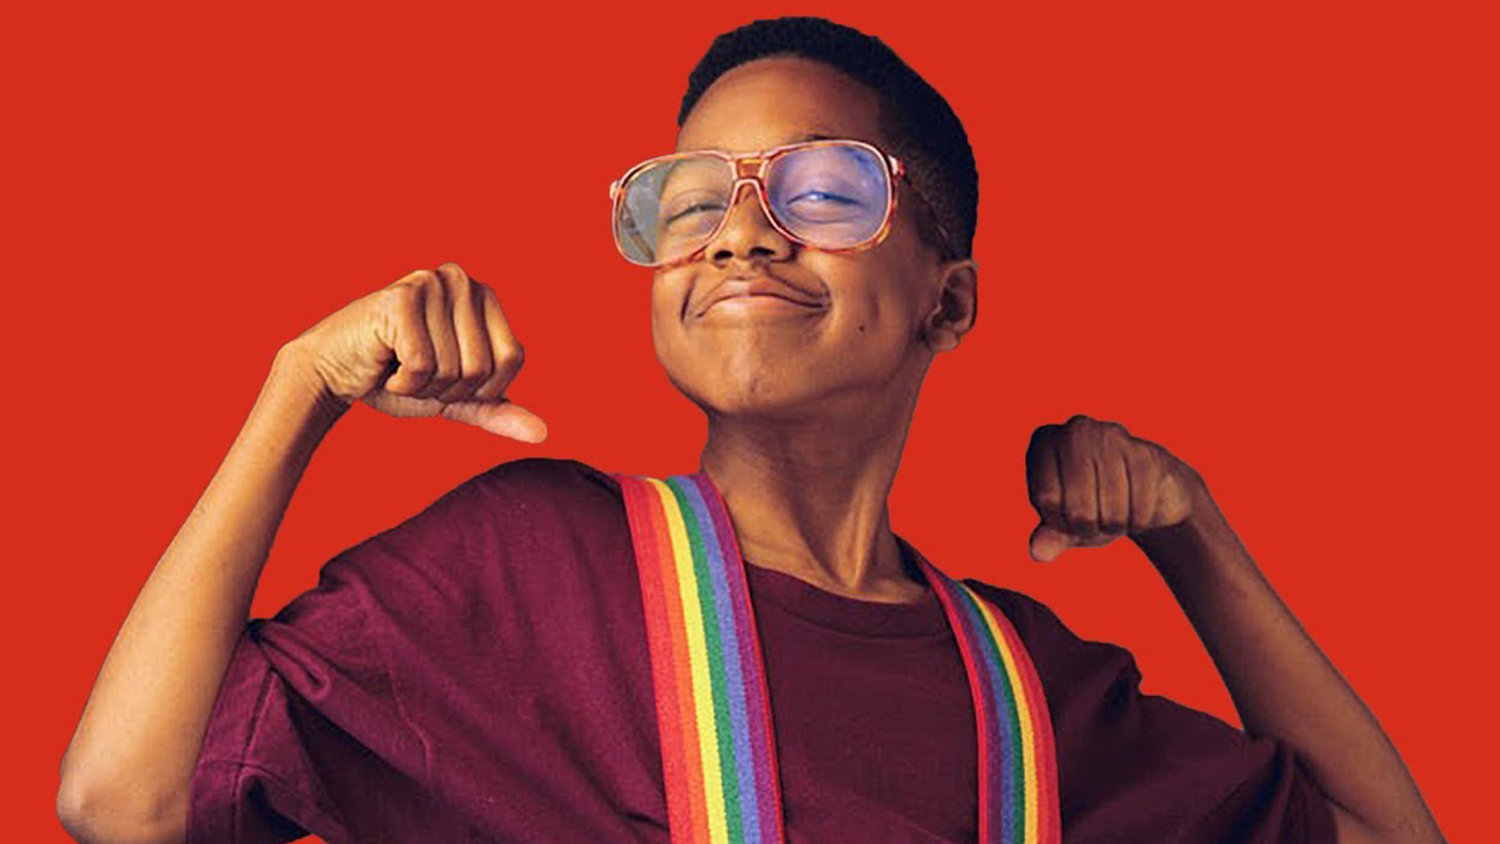 Steve Urkel is Bad to the Bone in Fun Video Remix from MelodySheep 1500x844